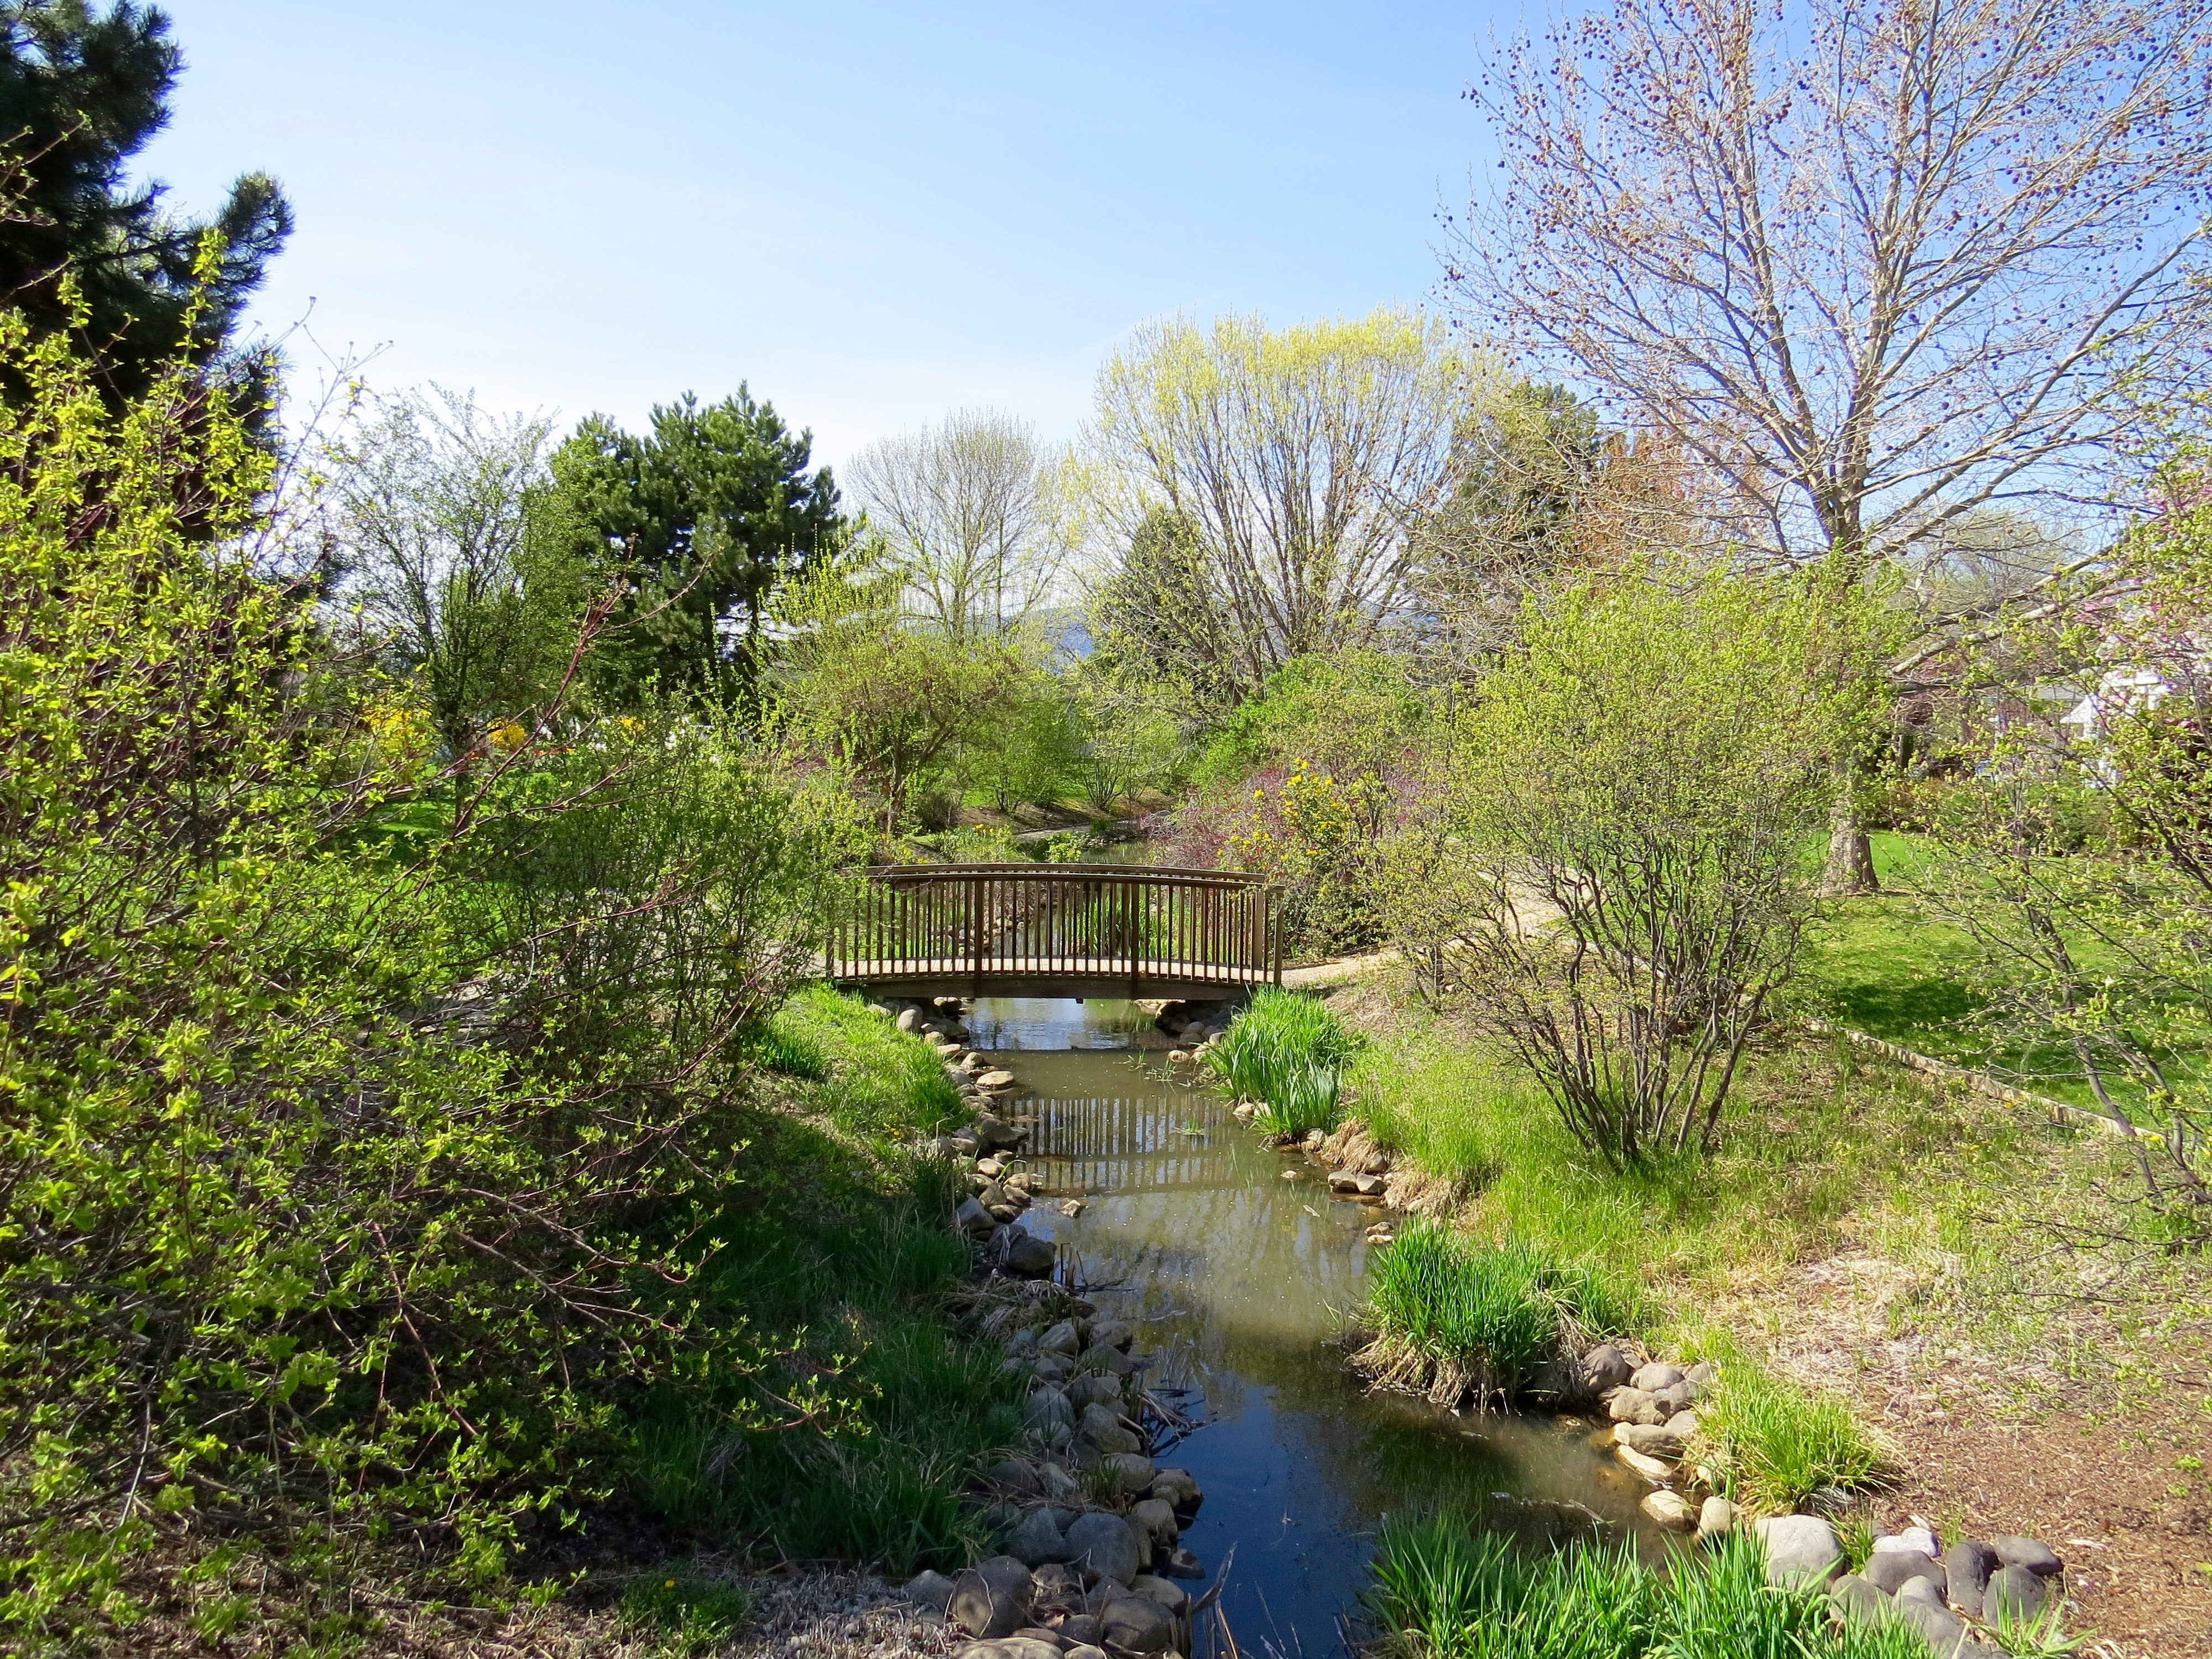 Bridge over Body of Water Surround by Greenery, Bridge, Landscape, Outdoors, Park, HQ Photo